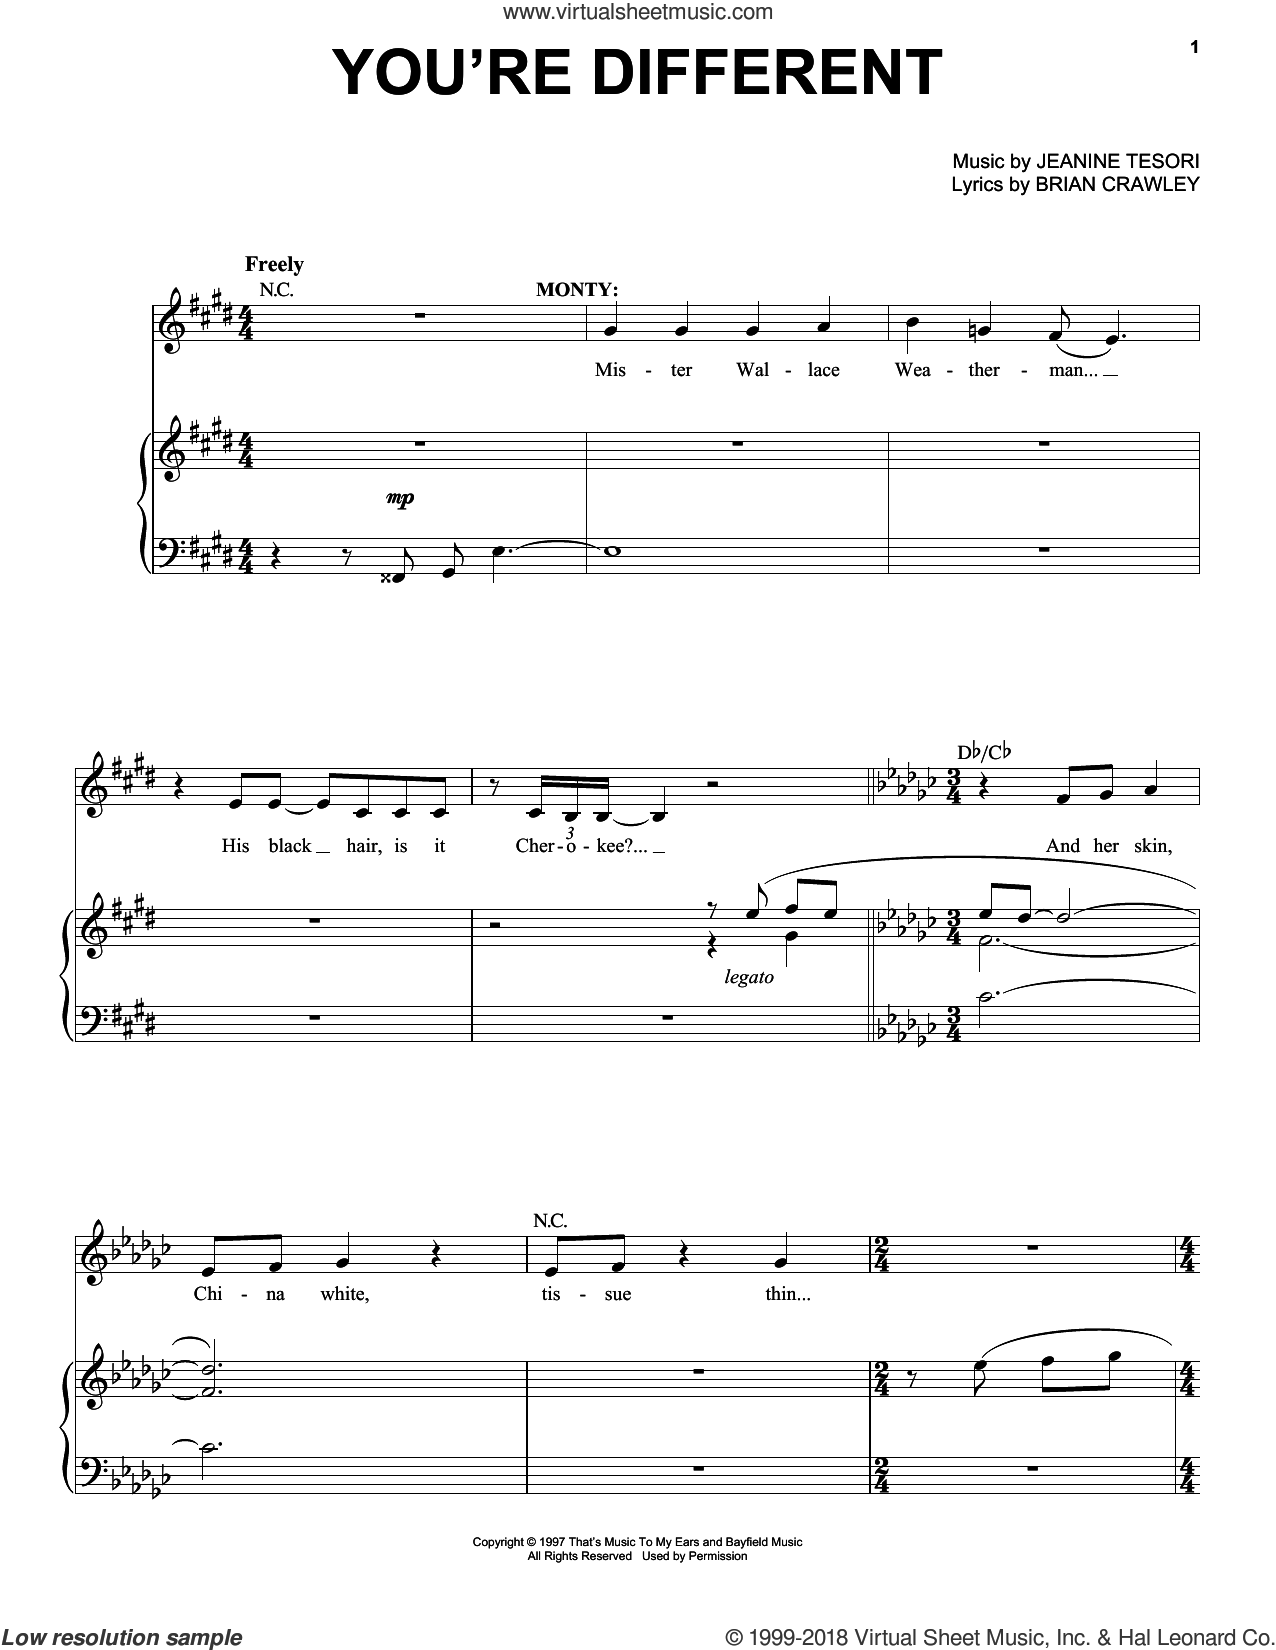 You're Different sheet music for voice and piano by Jeanine Tesori